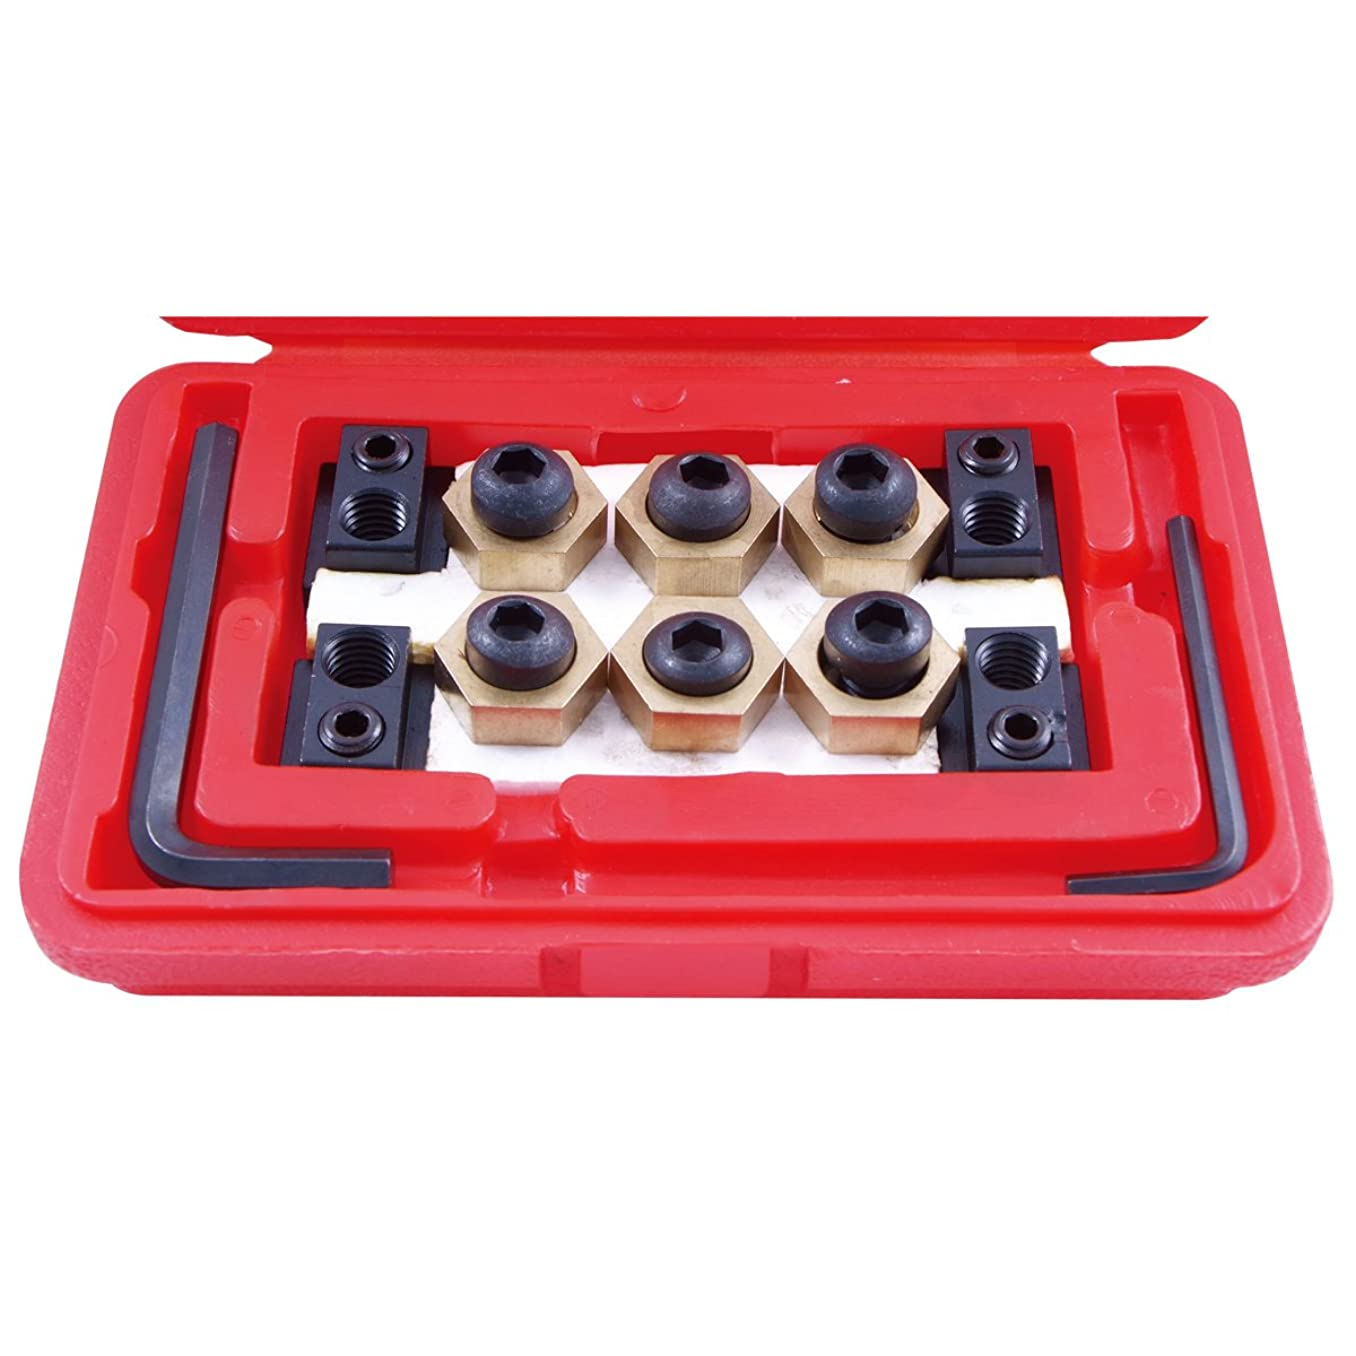 HHIP 3900-0318 Steel 4-Piece T-Slot Clamping Nut Kit, 5/8